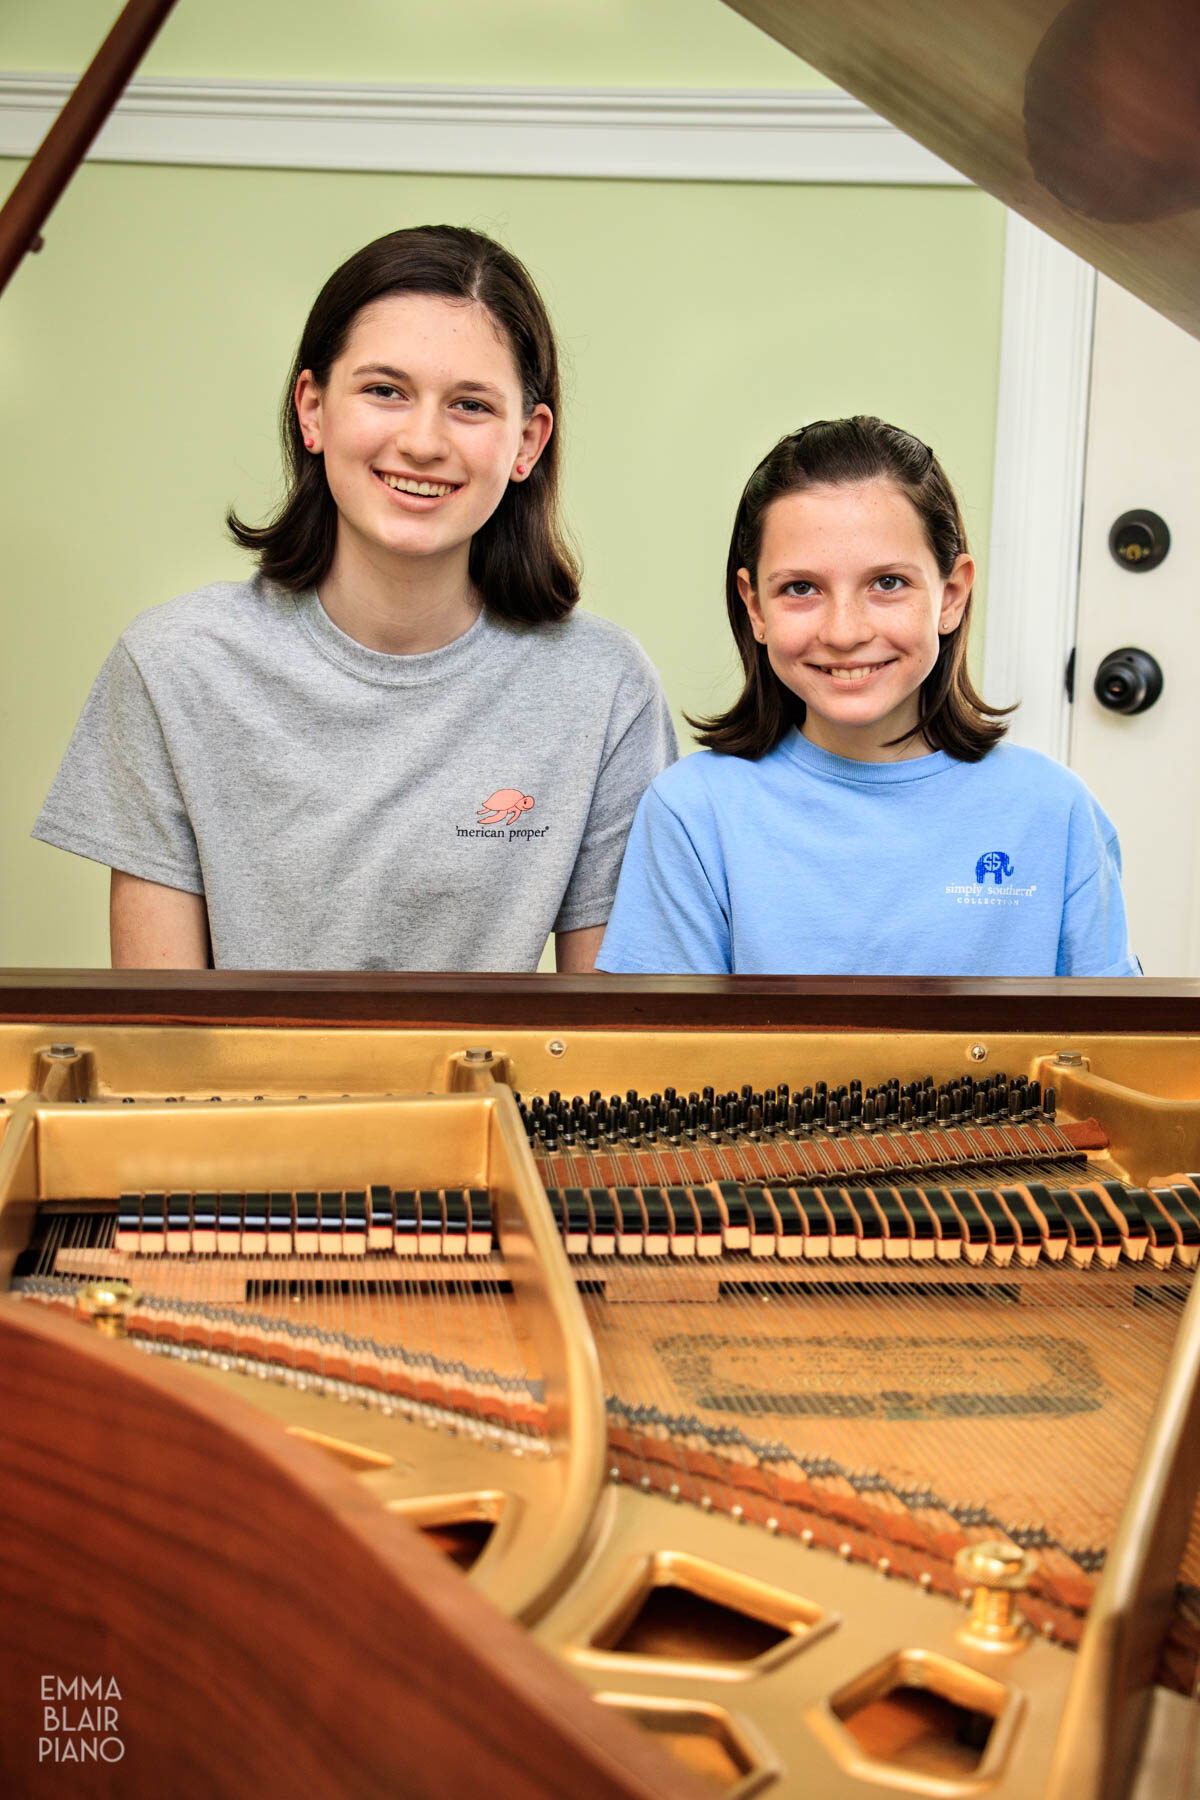 two girls sitting at a grand piano and smiling